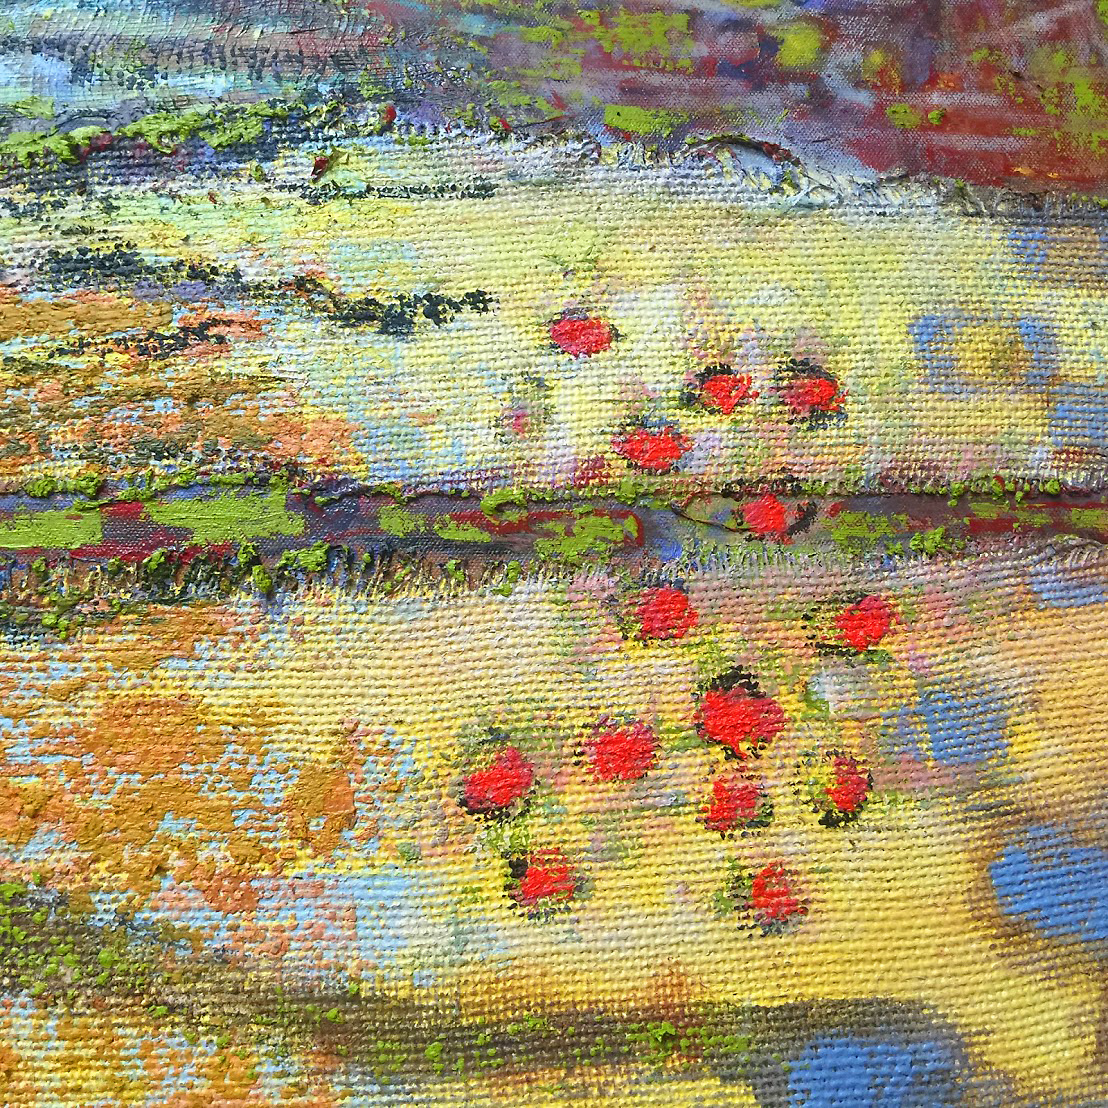 another detail of a new work in progress at the studio